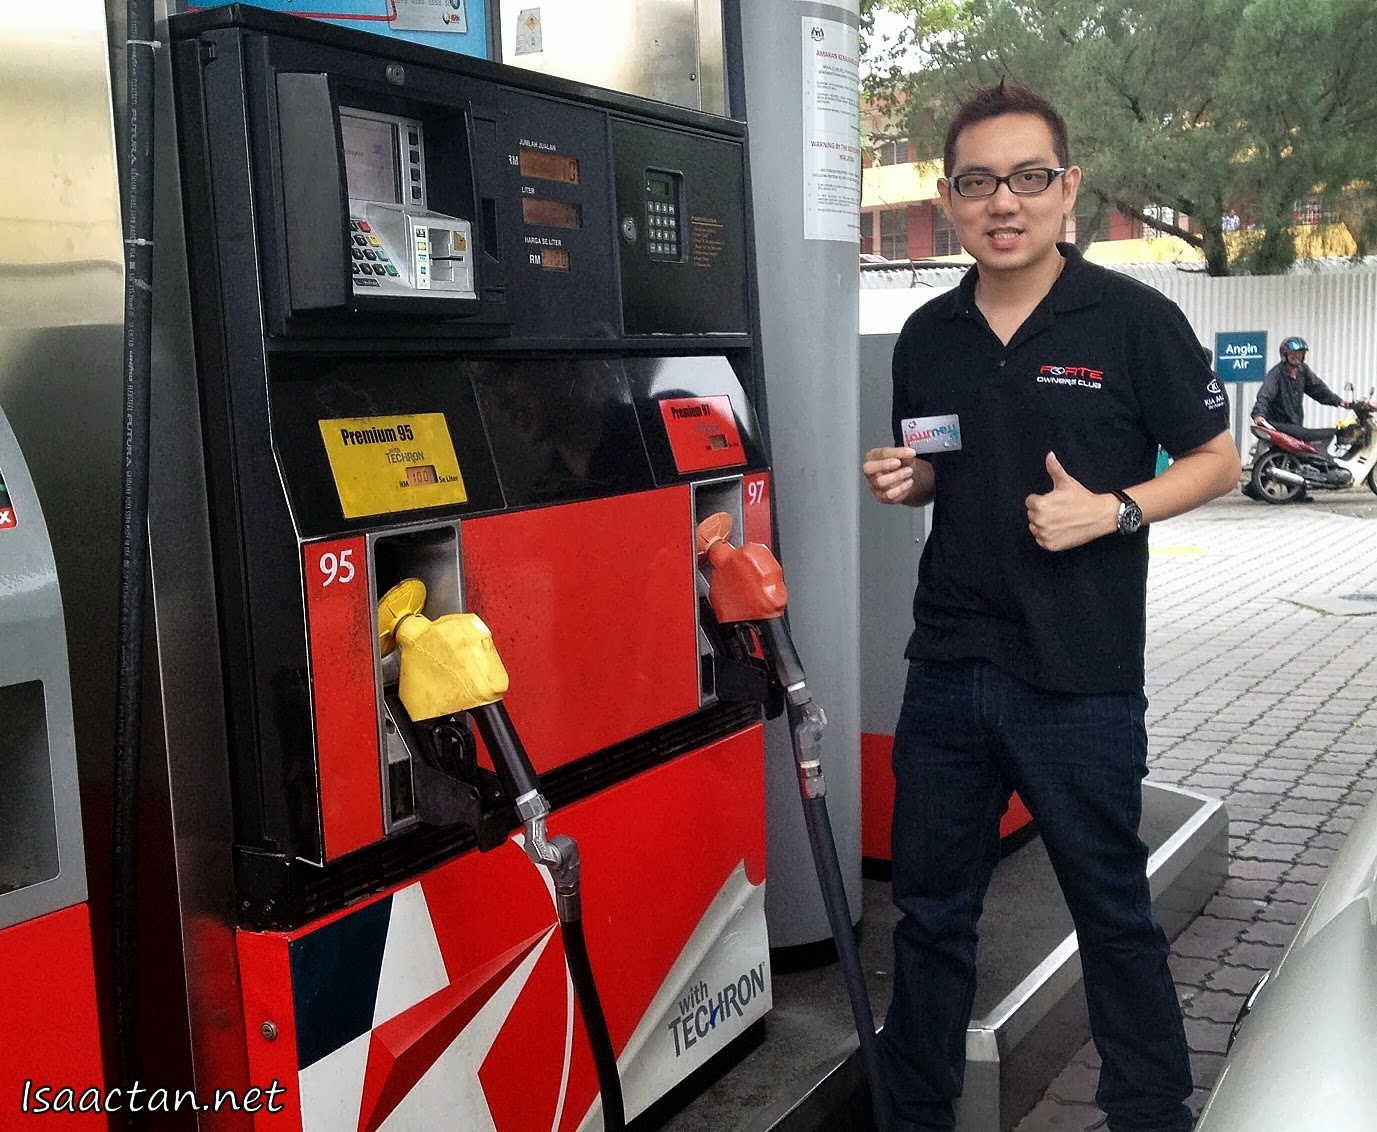 Just me having a quick shot with the JOURNEY Card in hand, pretty useful card to have when fuelling up at Caltex